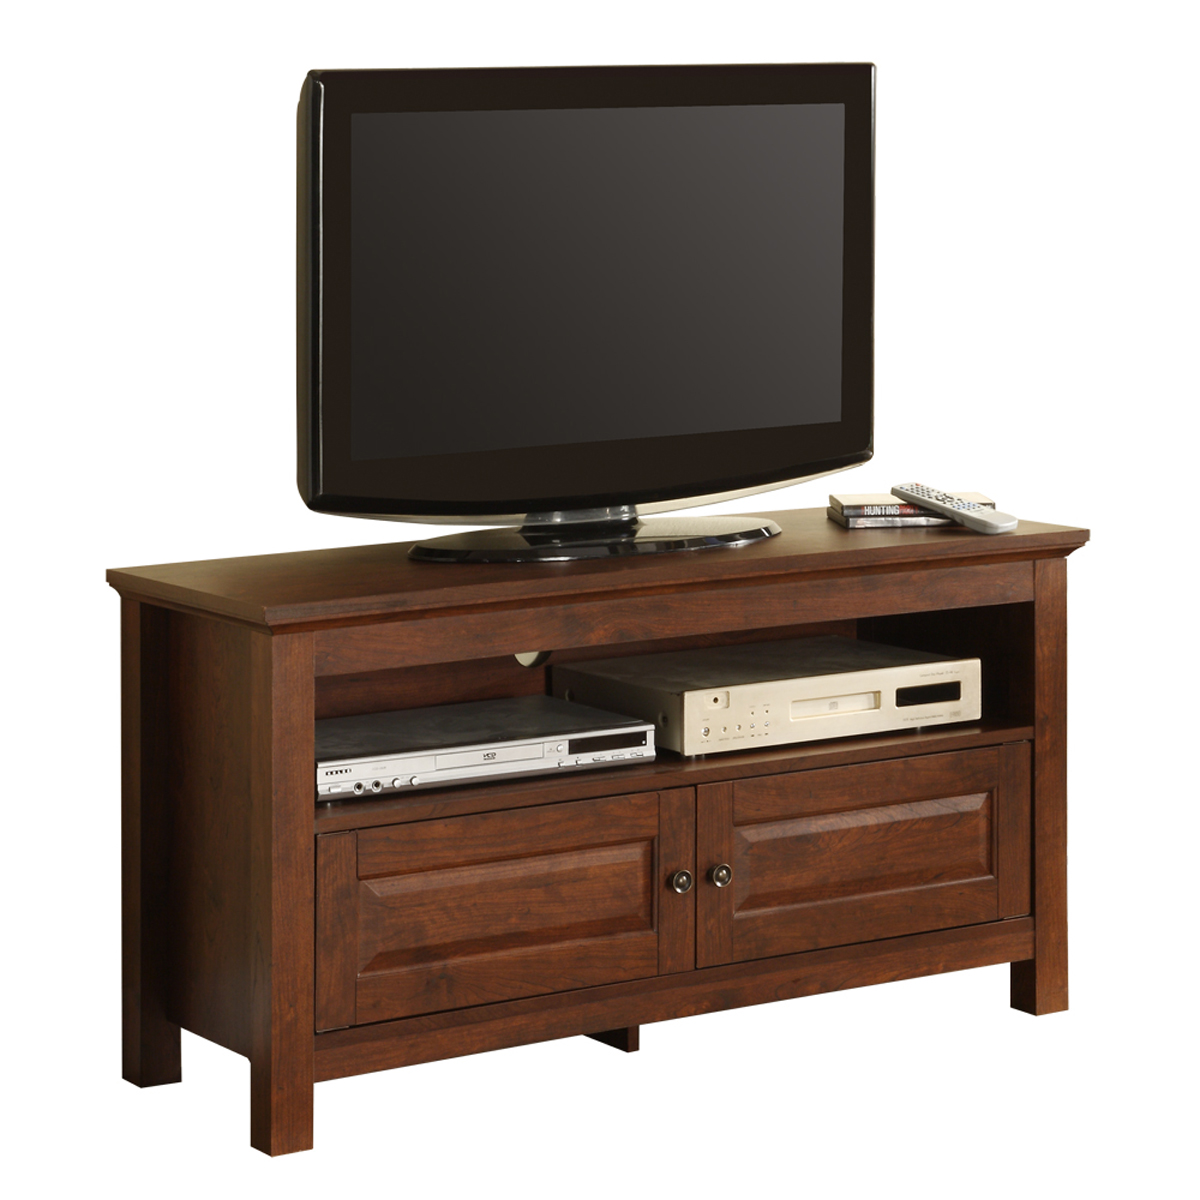 44 Inch Wood TV Stand with Media Storage by Walker Edison ...